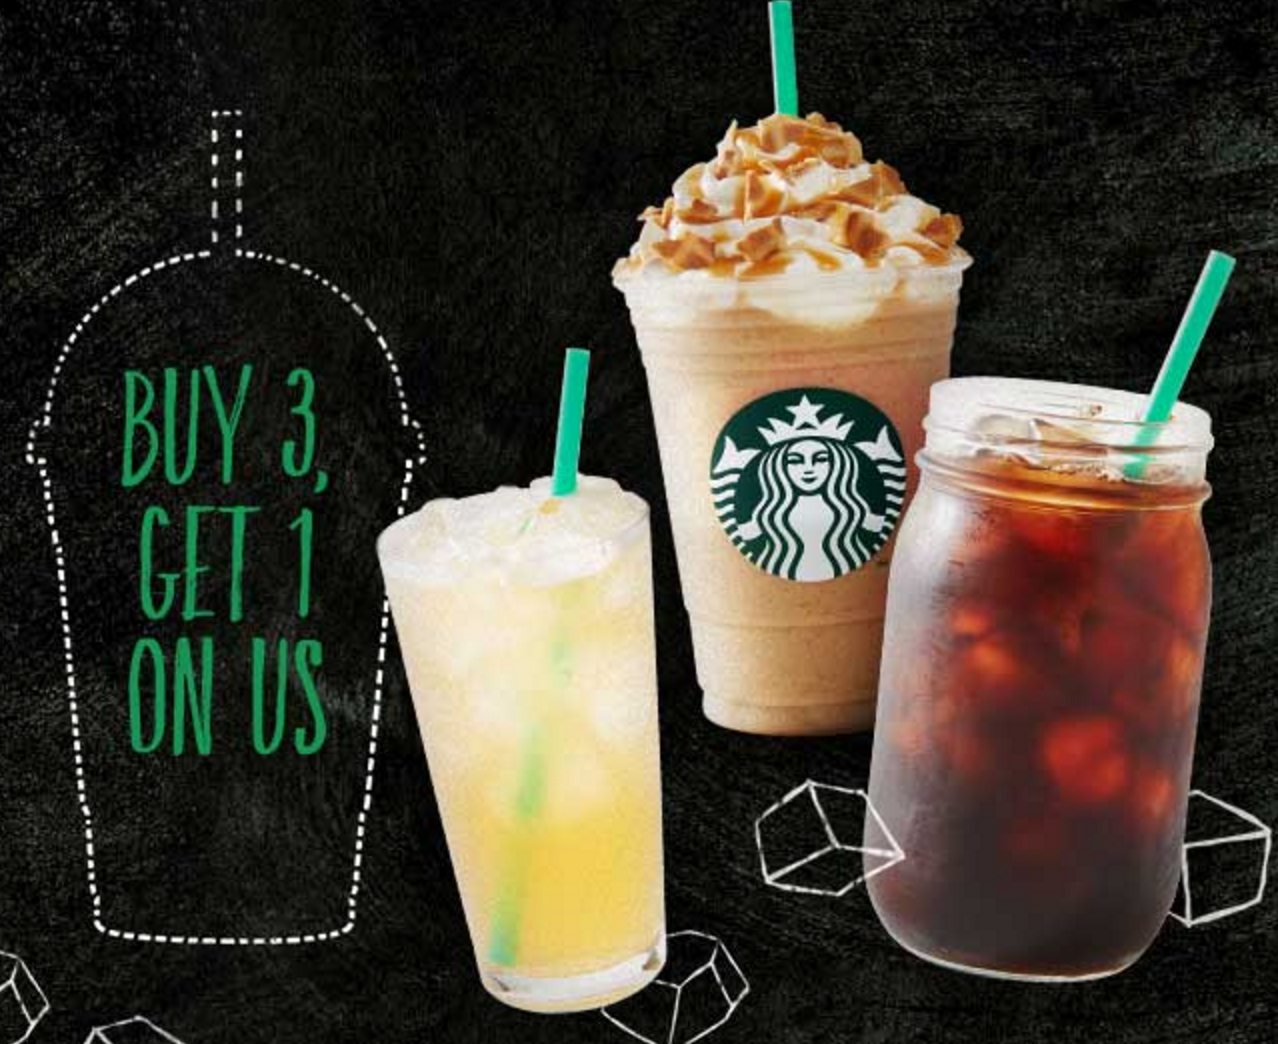 Deals on Starbucks drinks!